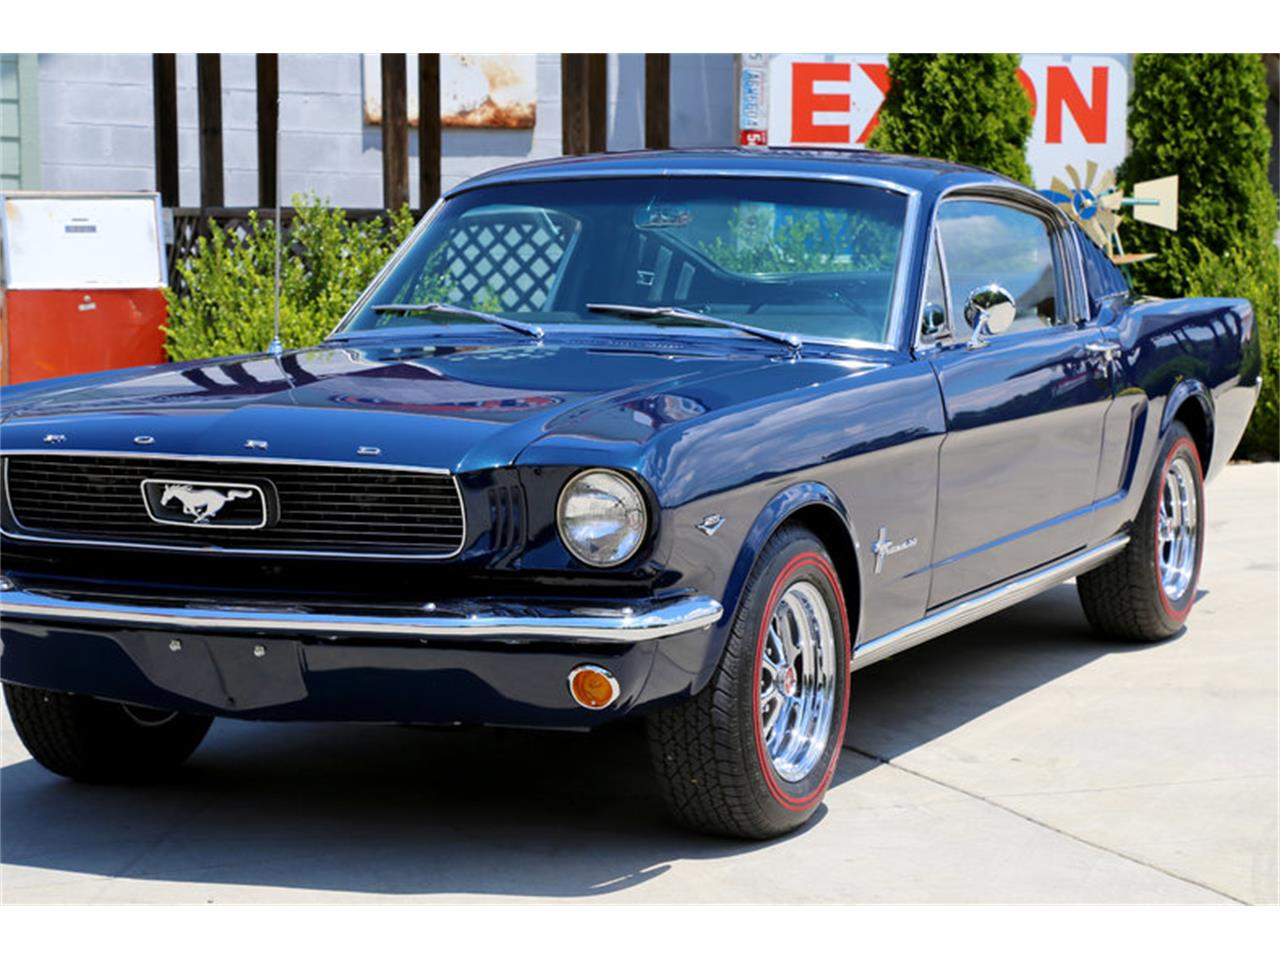 Large Picture of Classic 1966 Ford Mustang located in Tennessee - $44,995.00 - LDLT